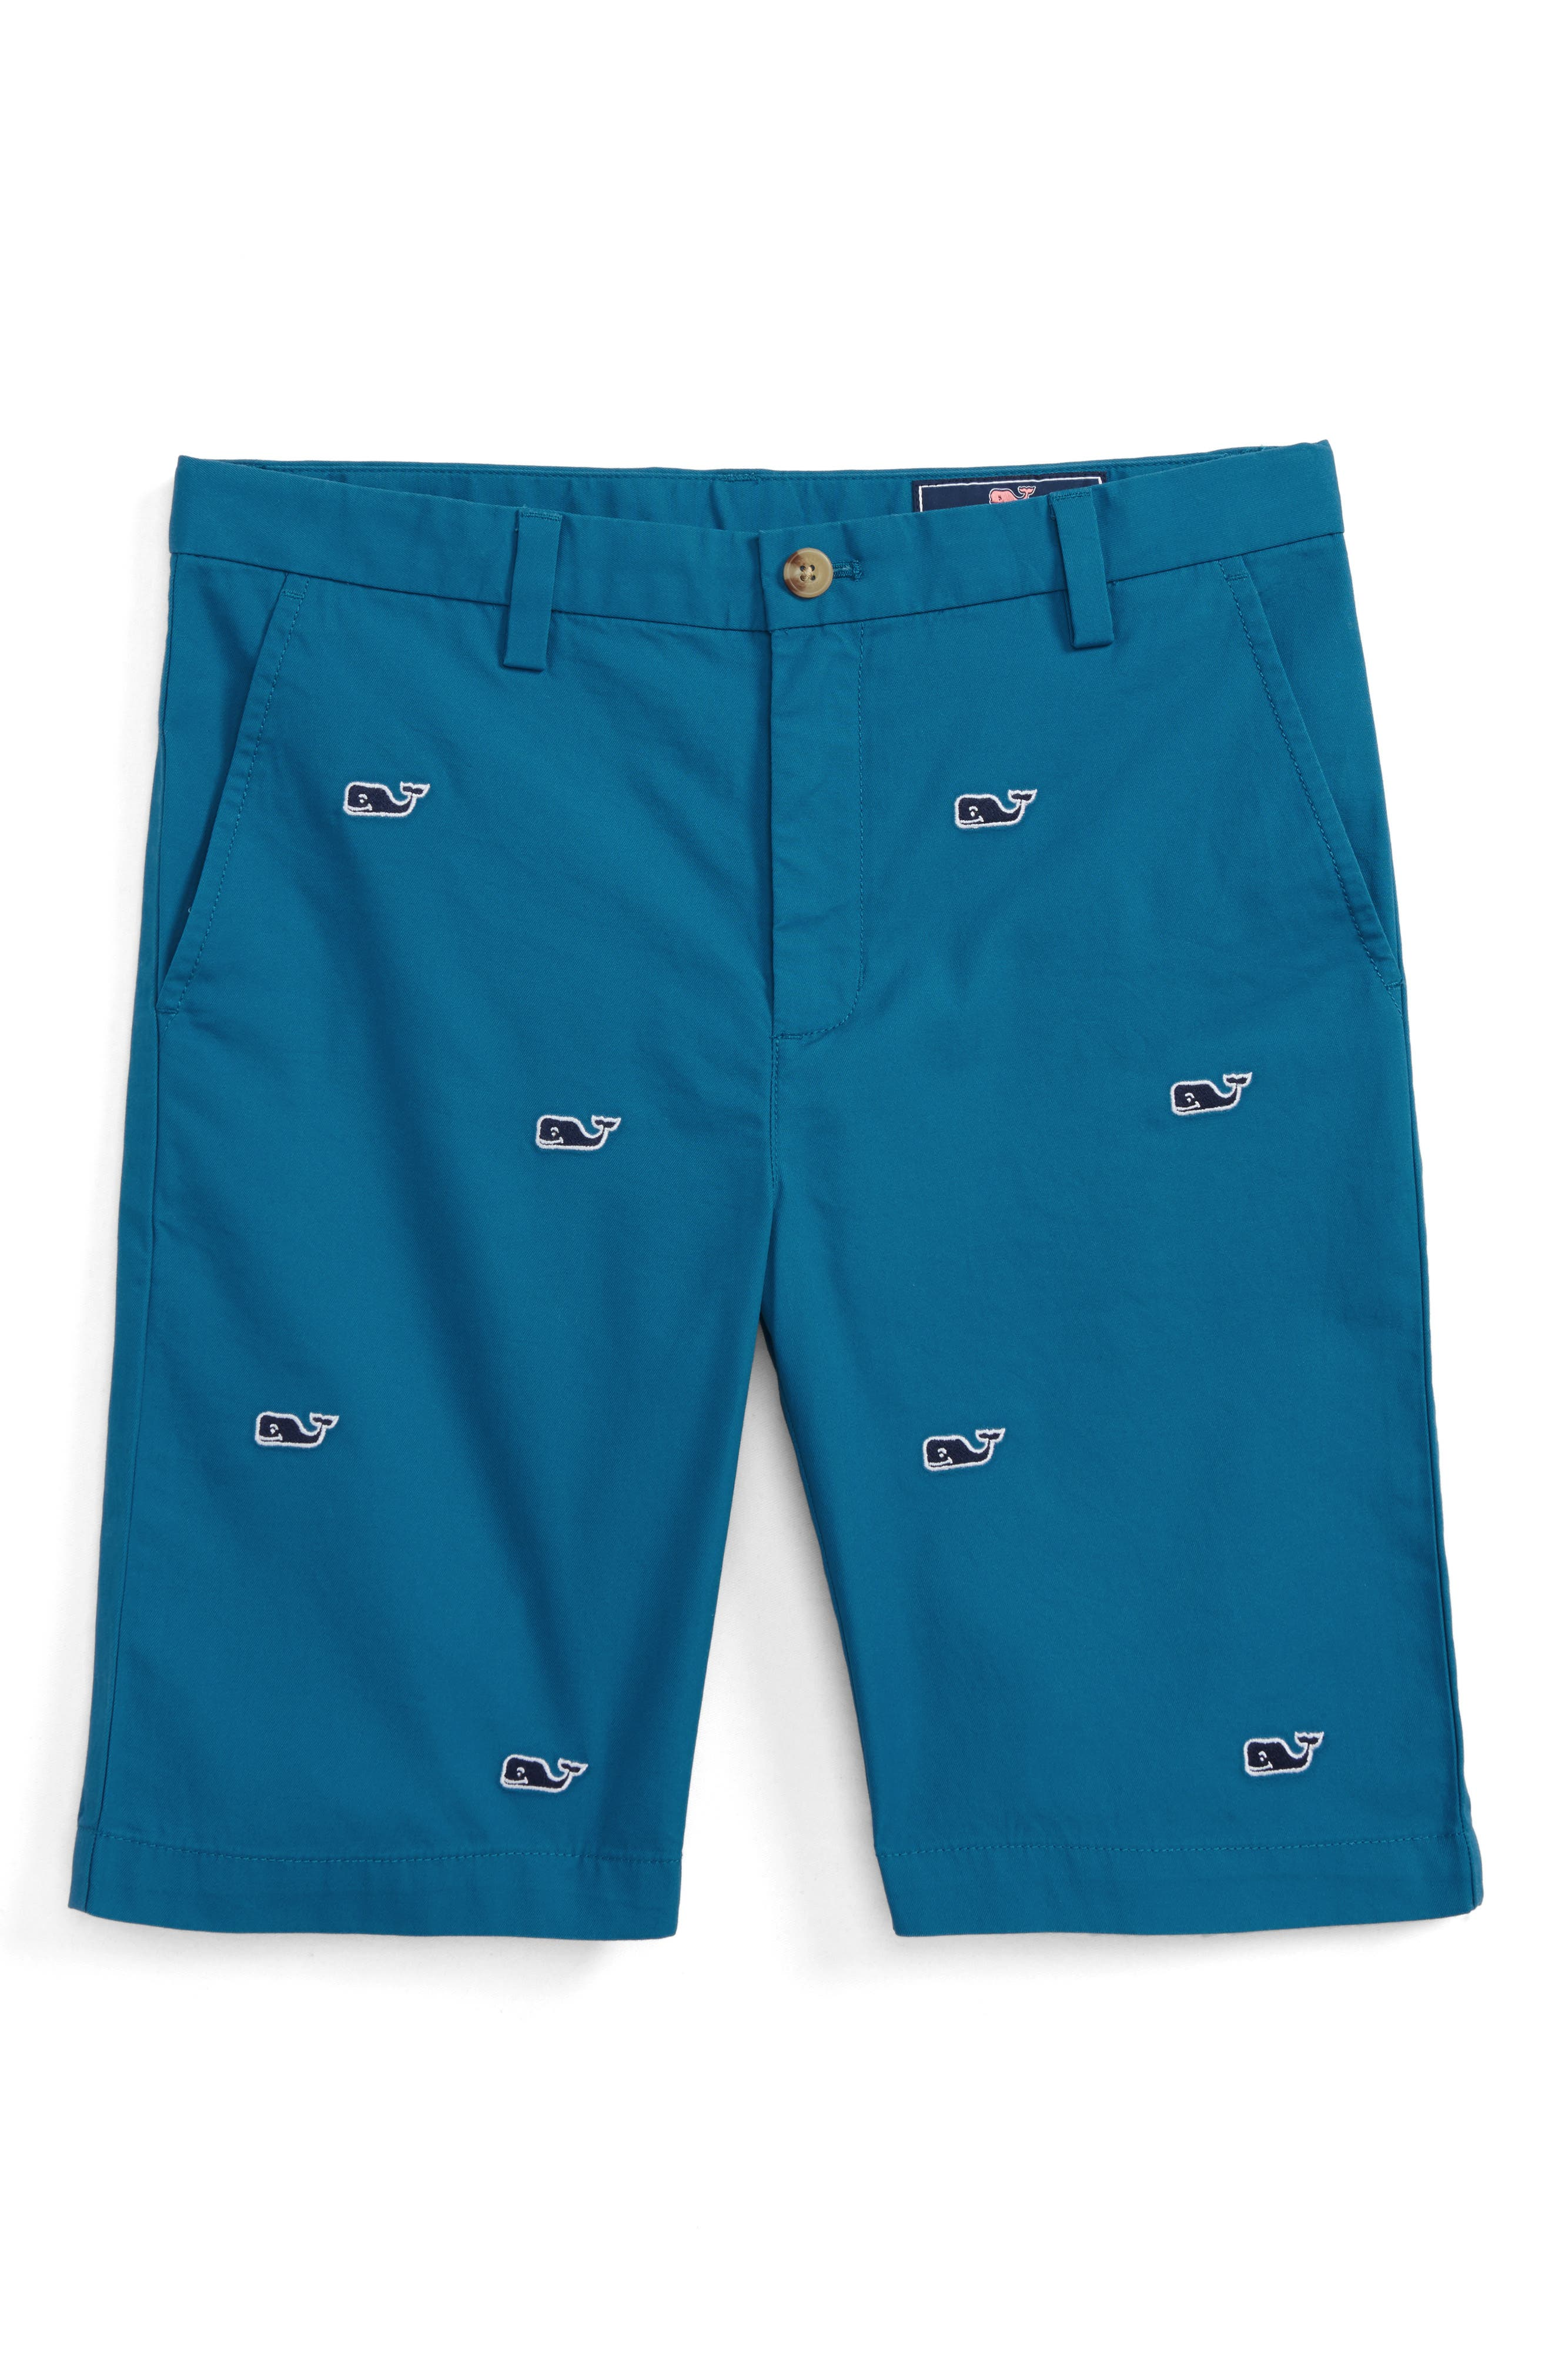 Breaker Whale Embroidered Shorts,                         Main,                         color, Schooner Blue